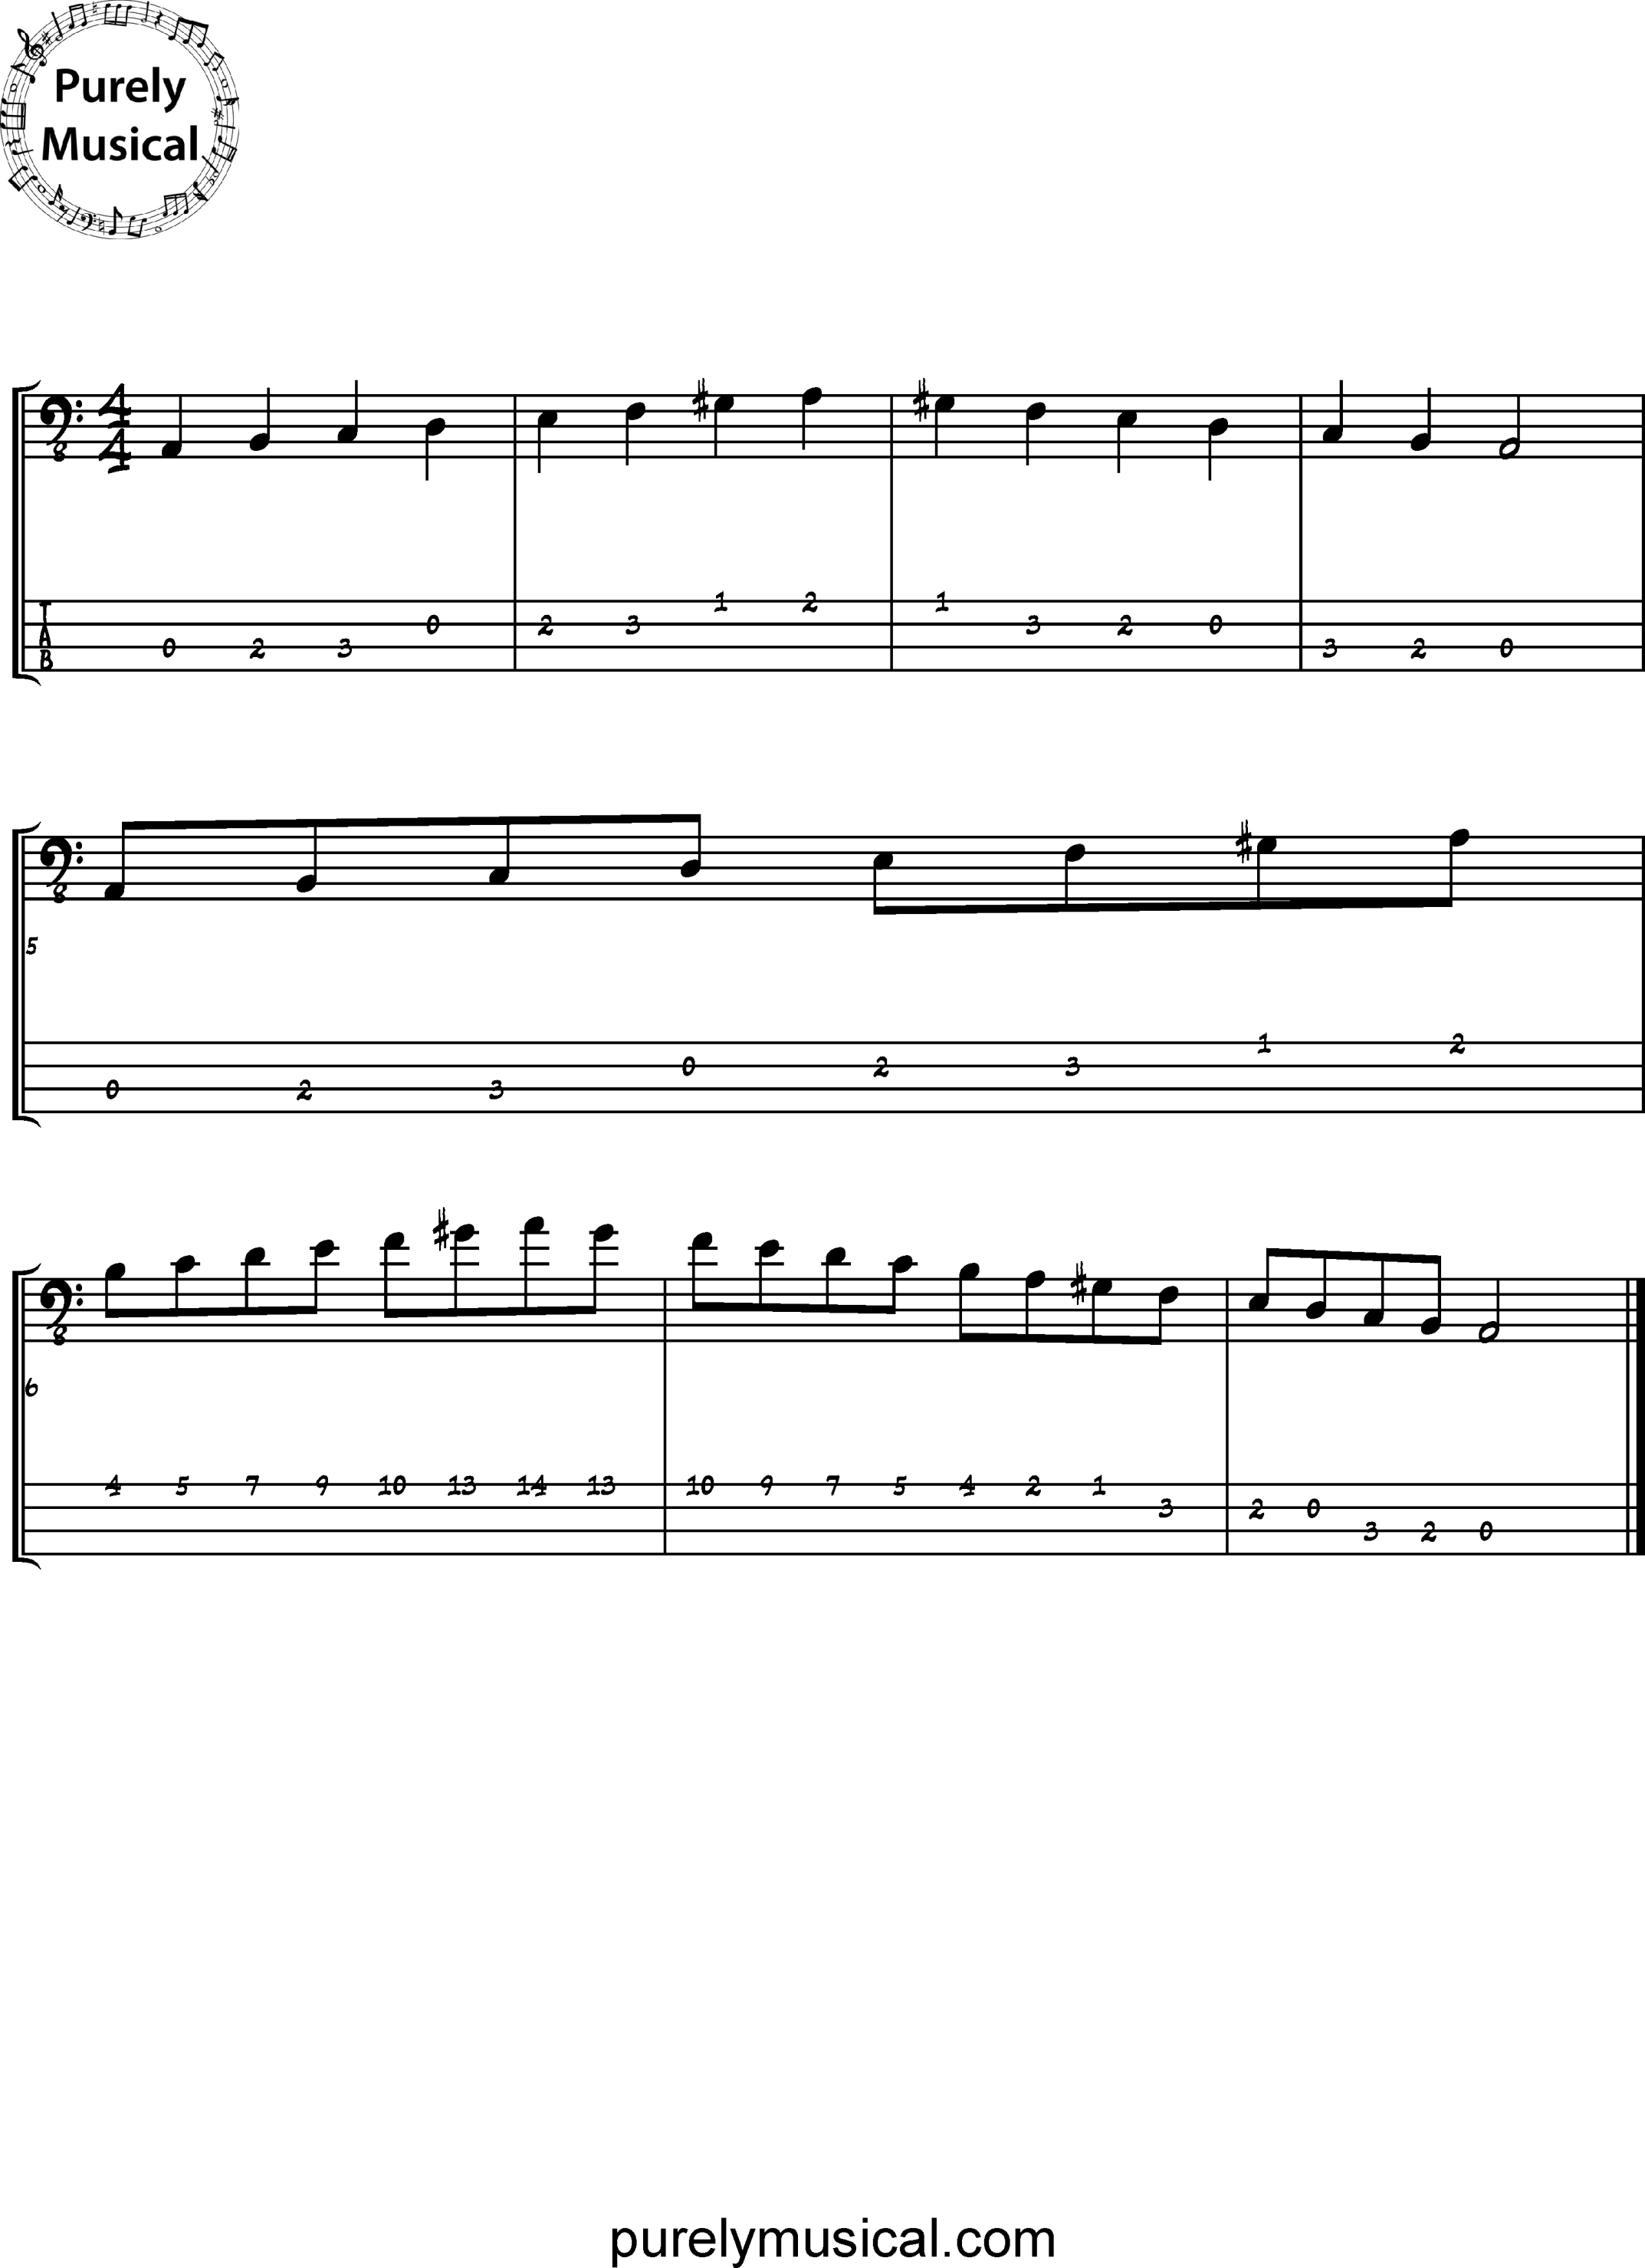 Beginner  Scale A Harmonic Minor